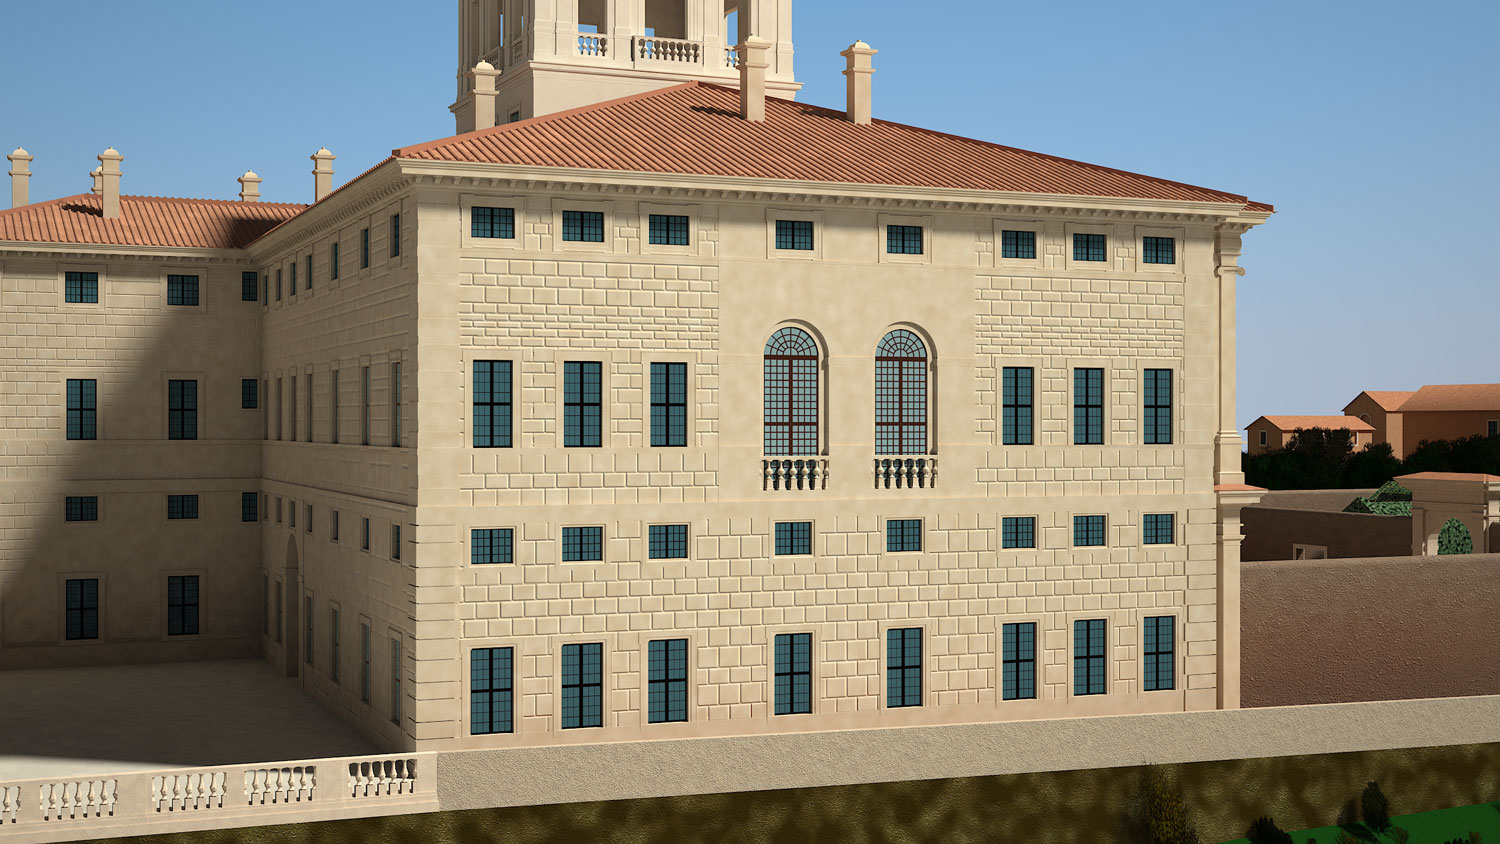 3D Reconstruction of the Quirinale Palace – Rome